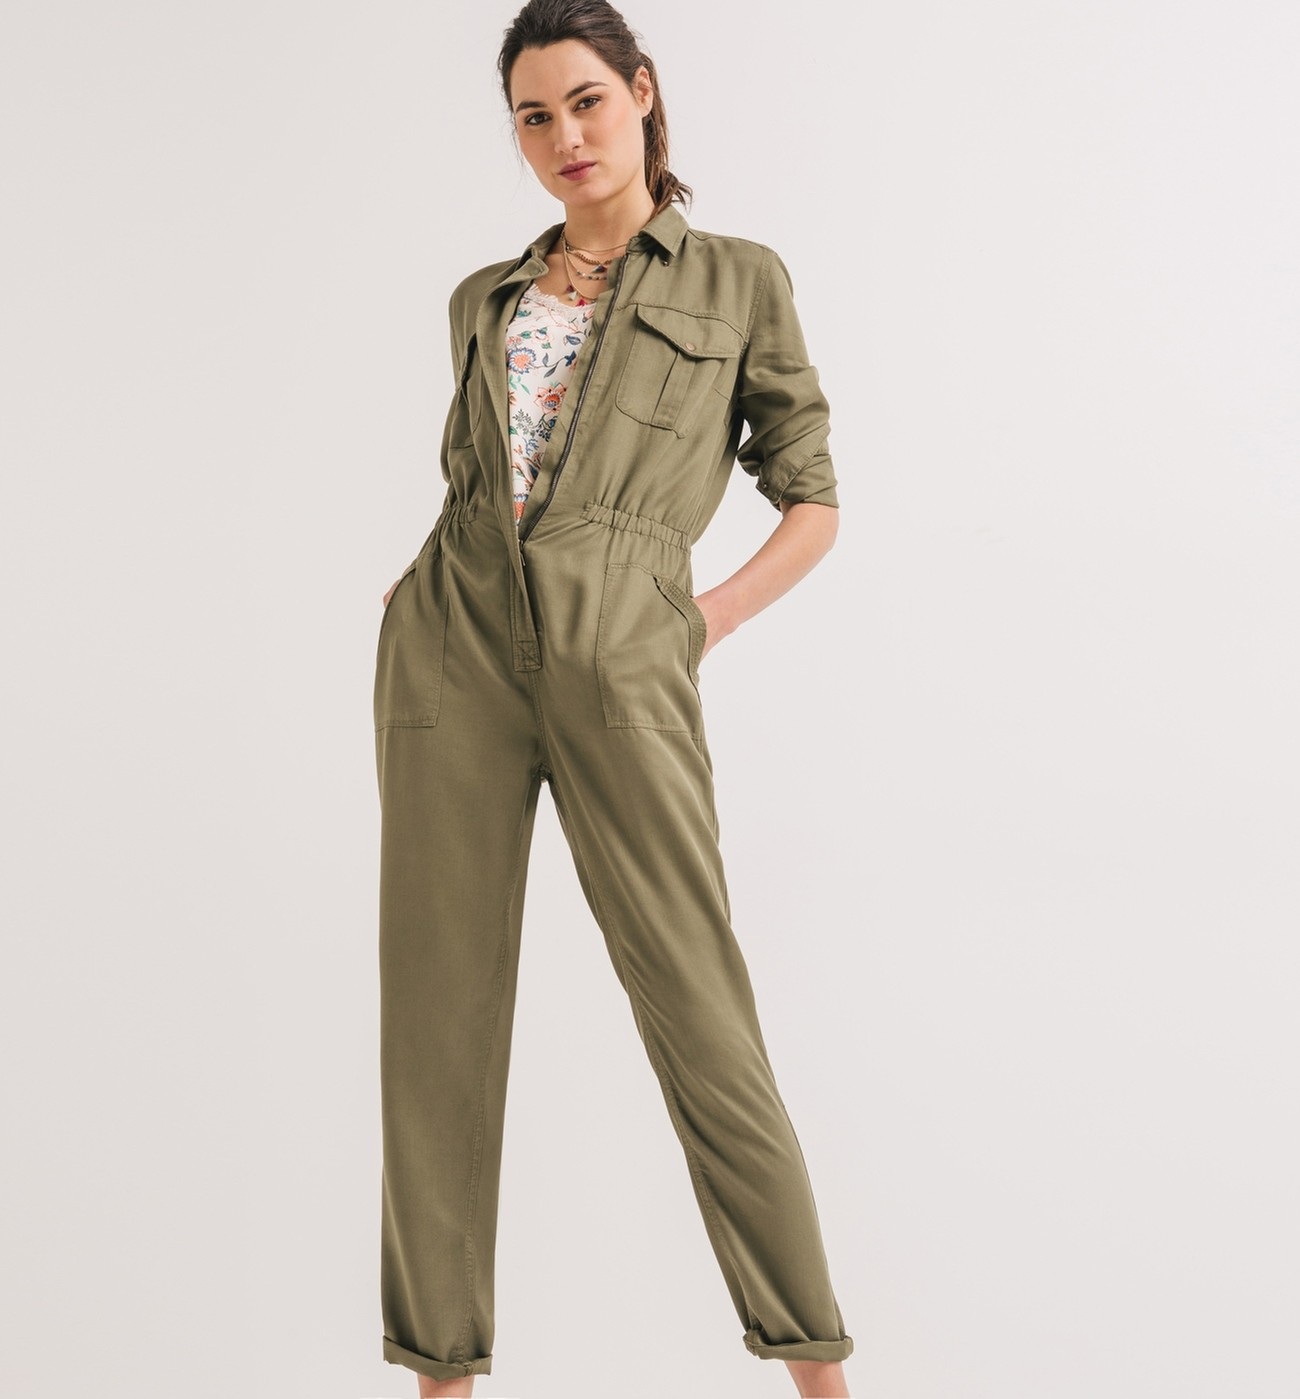 cheap for discount 59730 cf245 Overall - Khaki - Damen - Overalls / Jumpsuits - Promod